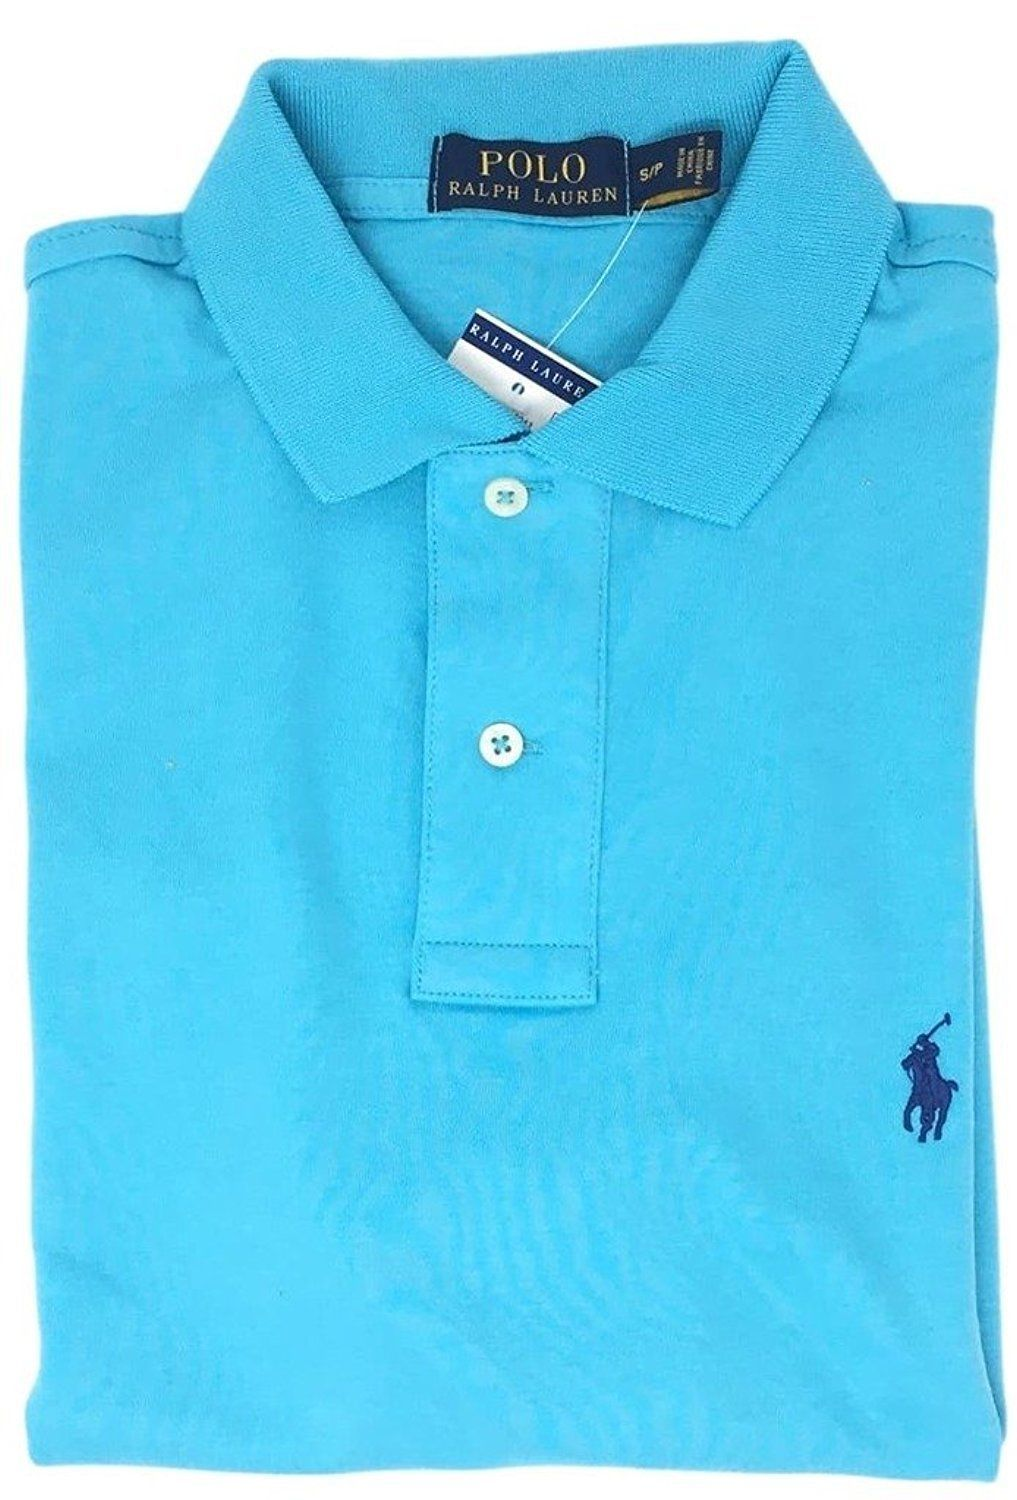 LG POLO RALPH LAUREN MEN/'S CLASSIC FIT SOFT TOUCH POLO SHIRT 100/% COTTON NWT